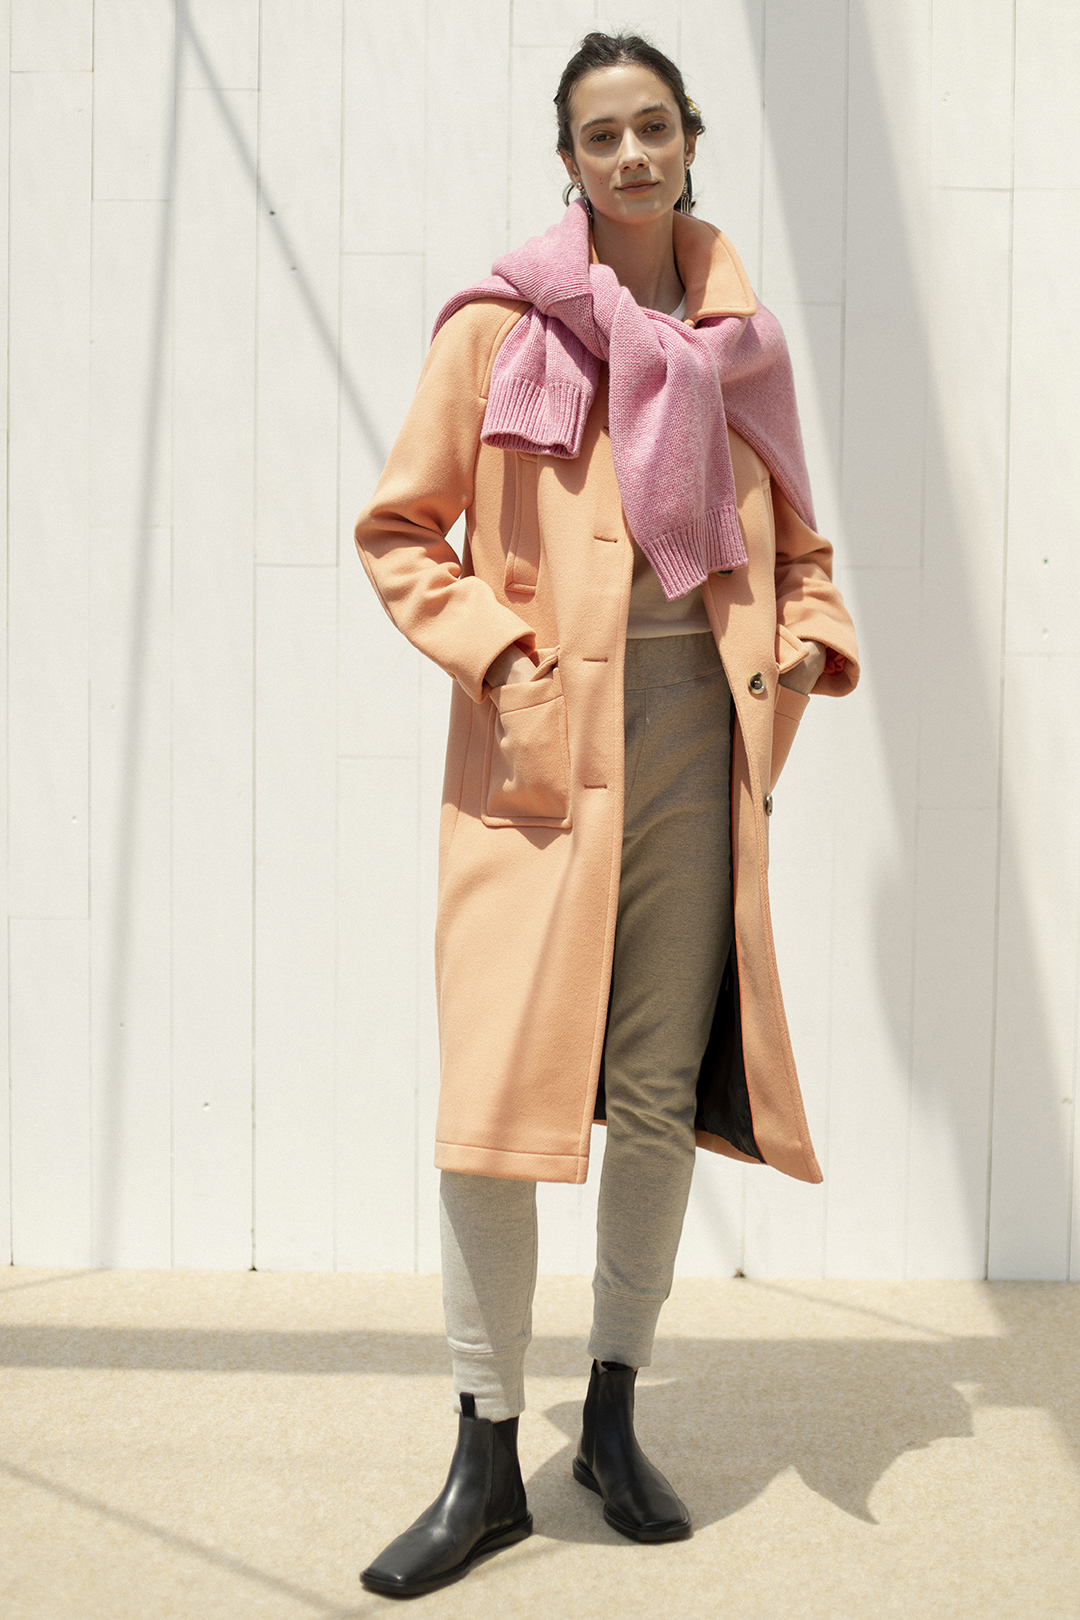 15_2 outer¥86,900  knit¥33,000  tee¥7,480  pants¥20,900  earrings¥19,800  hair acc¥5,500  hair acc¥9,900  shoes¥31,900